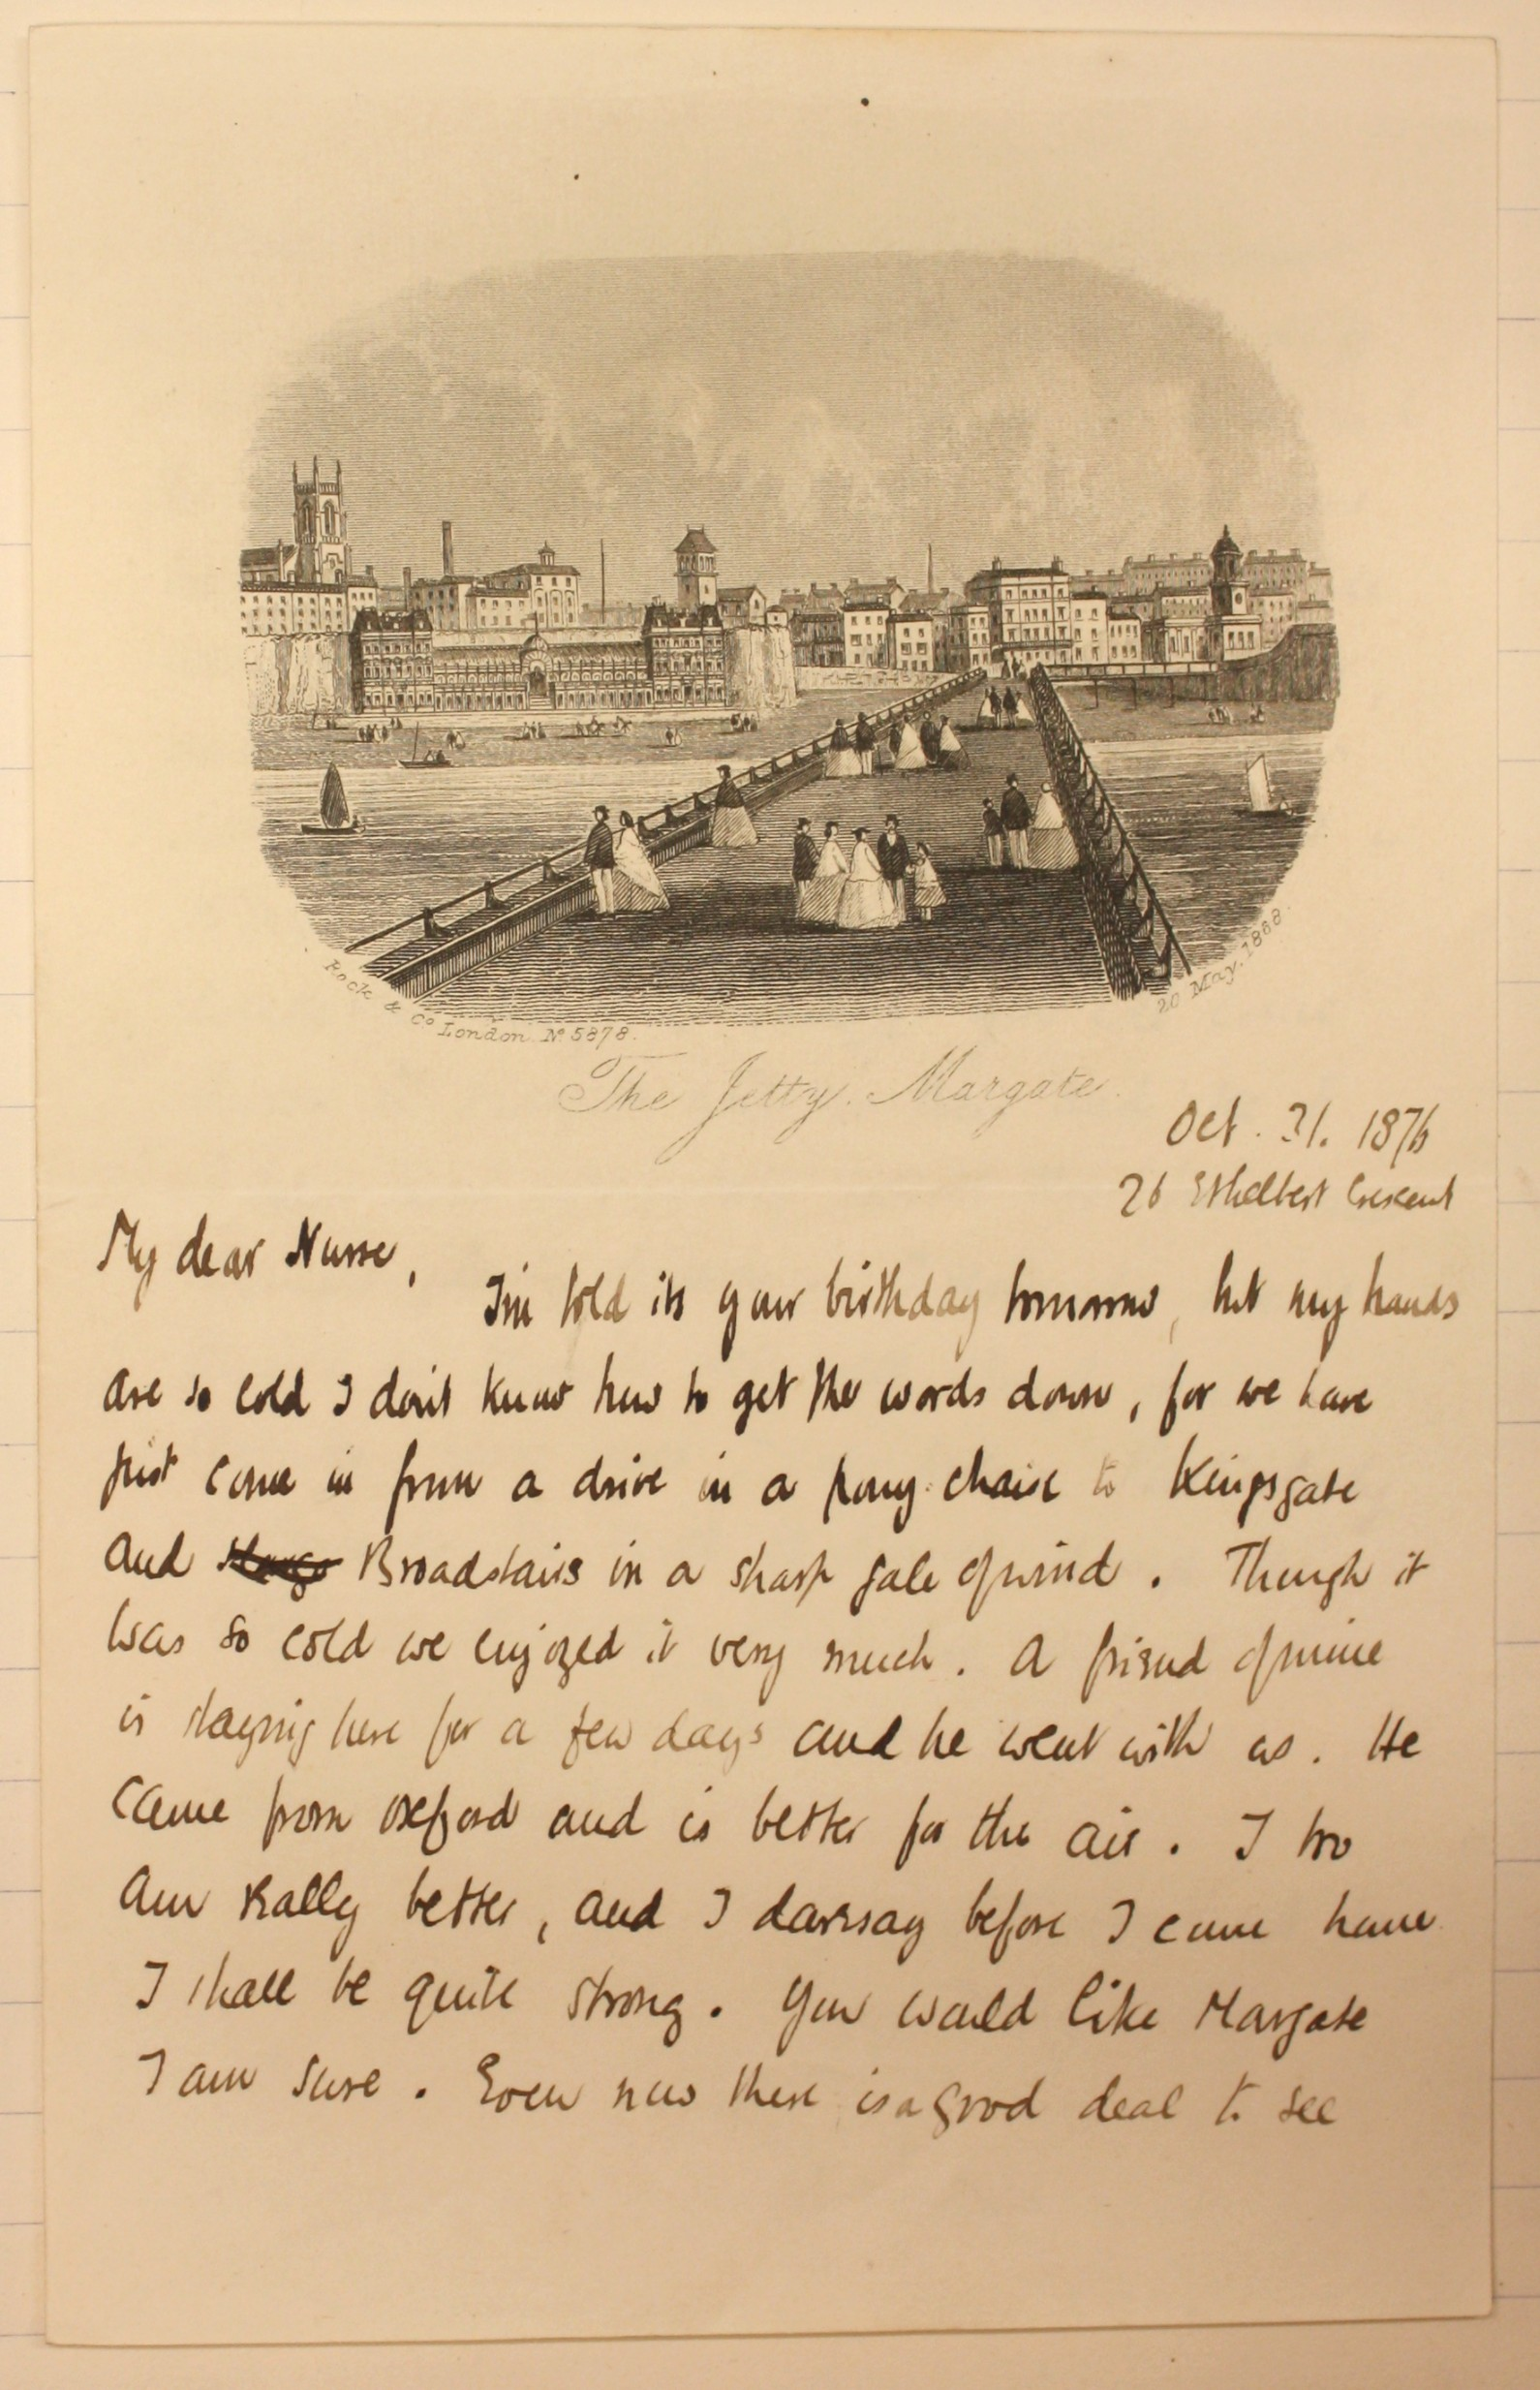 Letter from Arnold Toynbee to his nurse from Margate, 31 October 1876